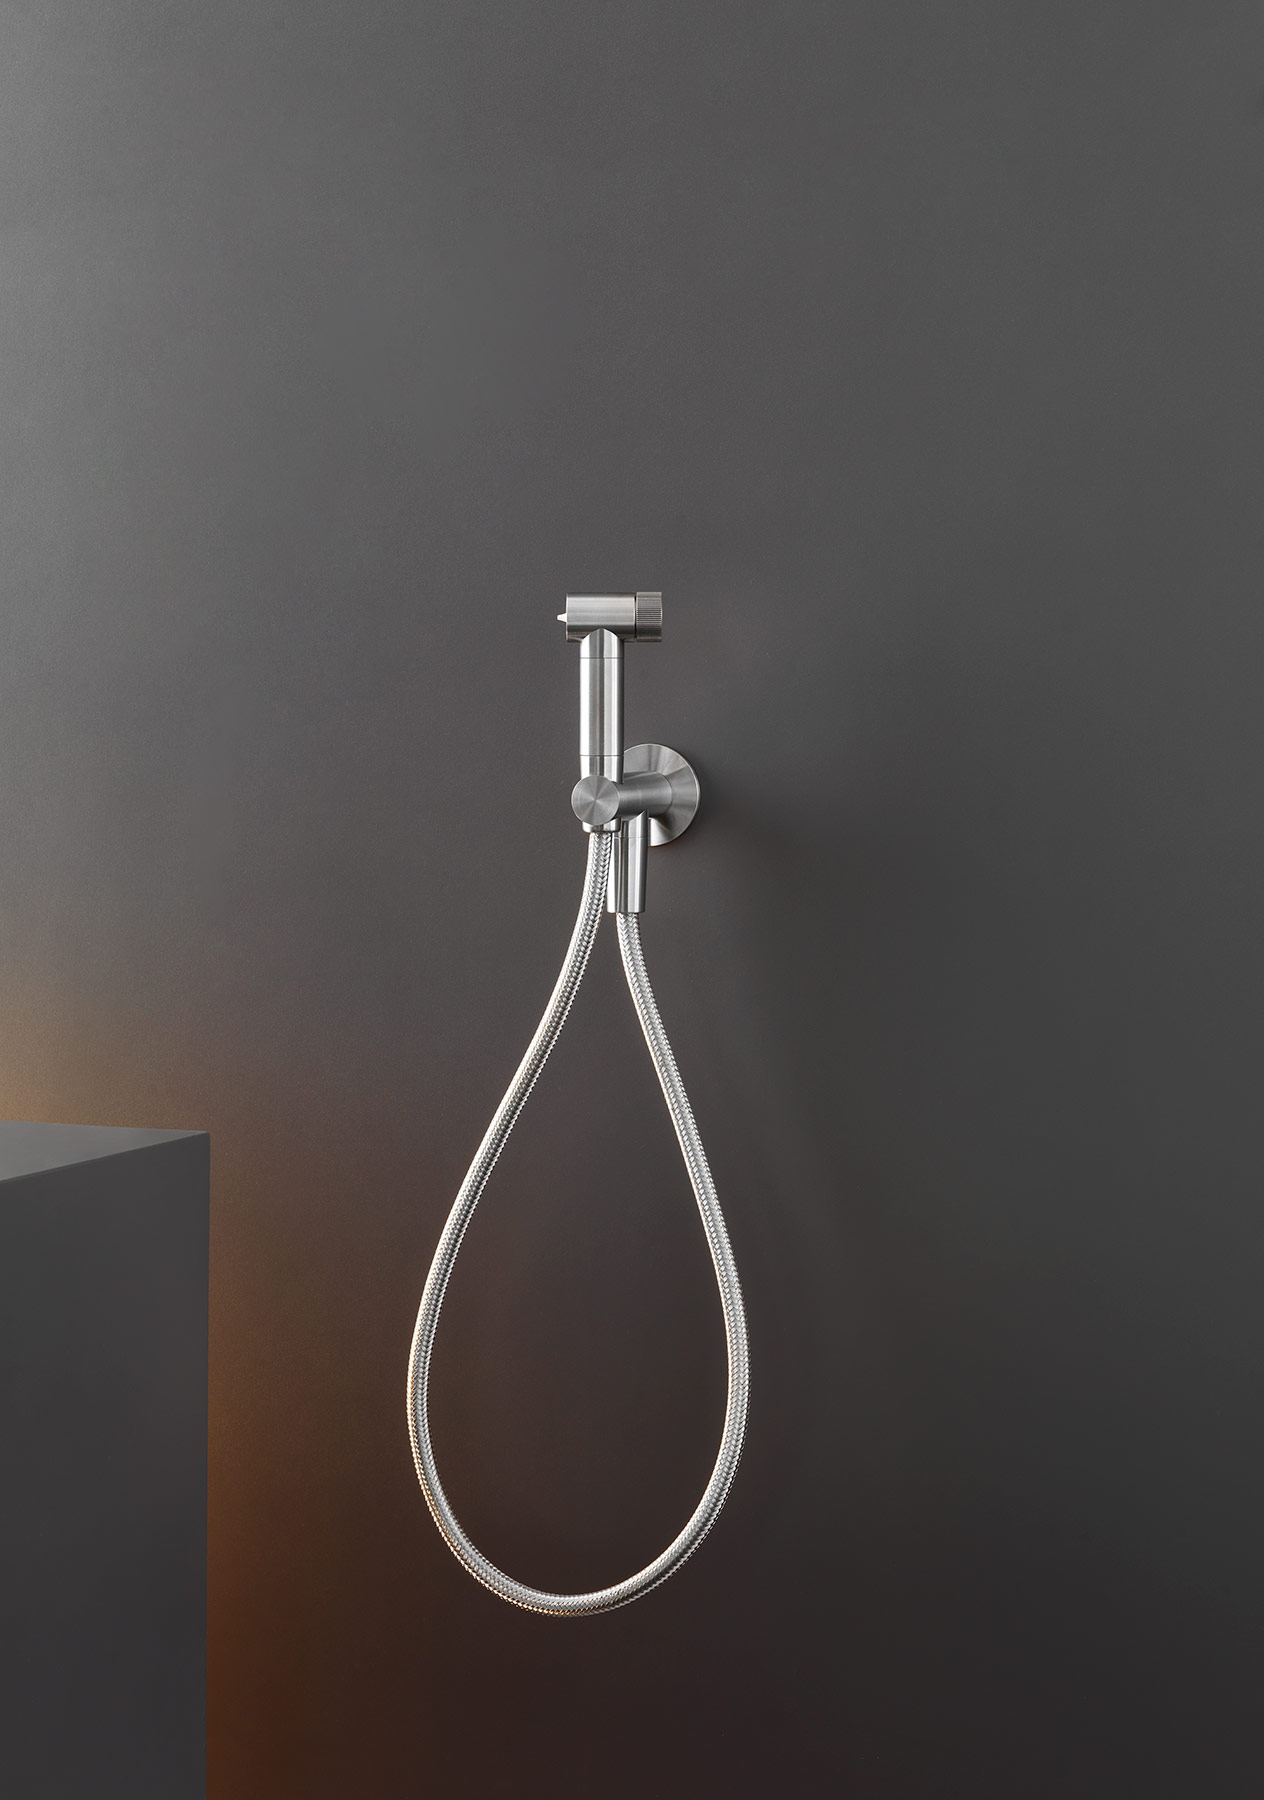 Contemporary Free Wall Mount Toilet Cleaner